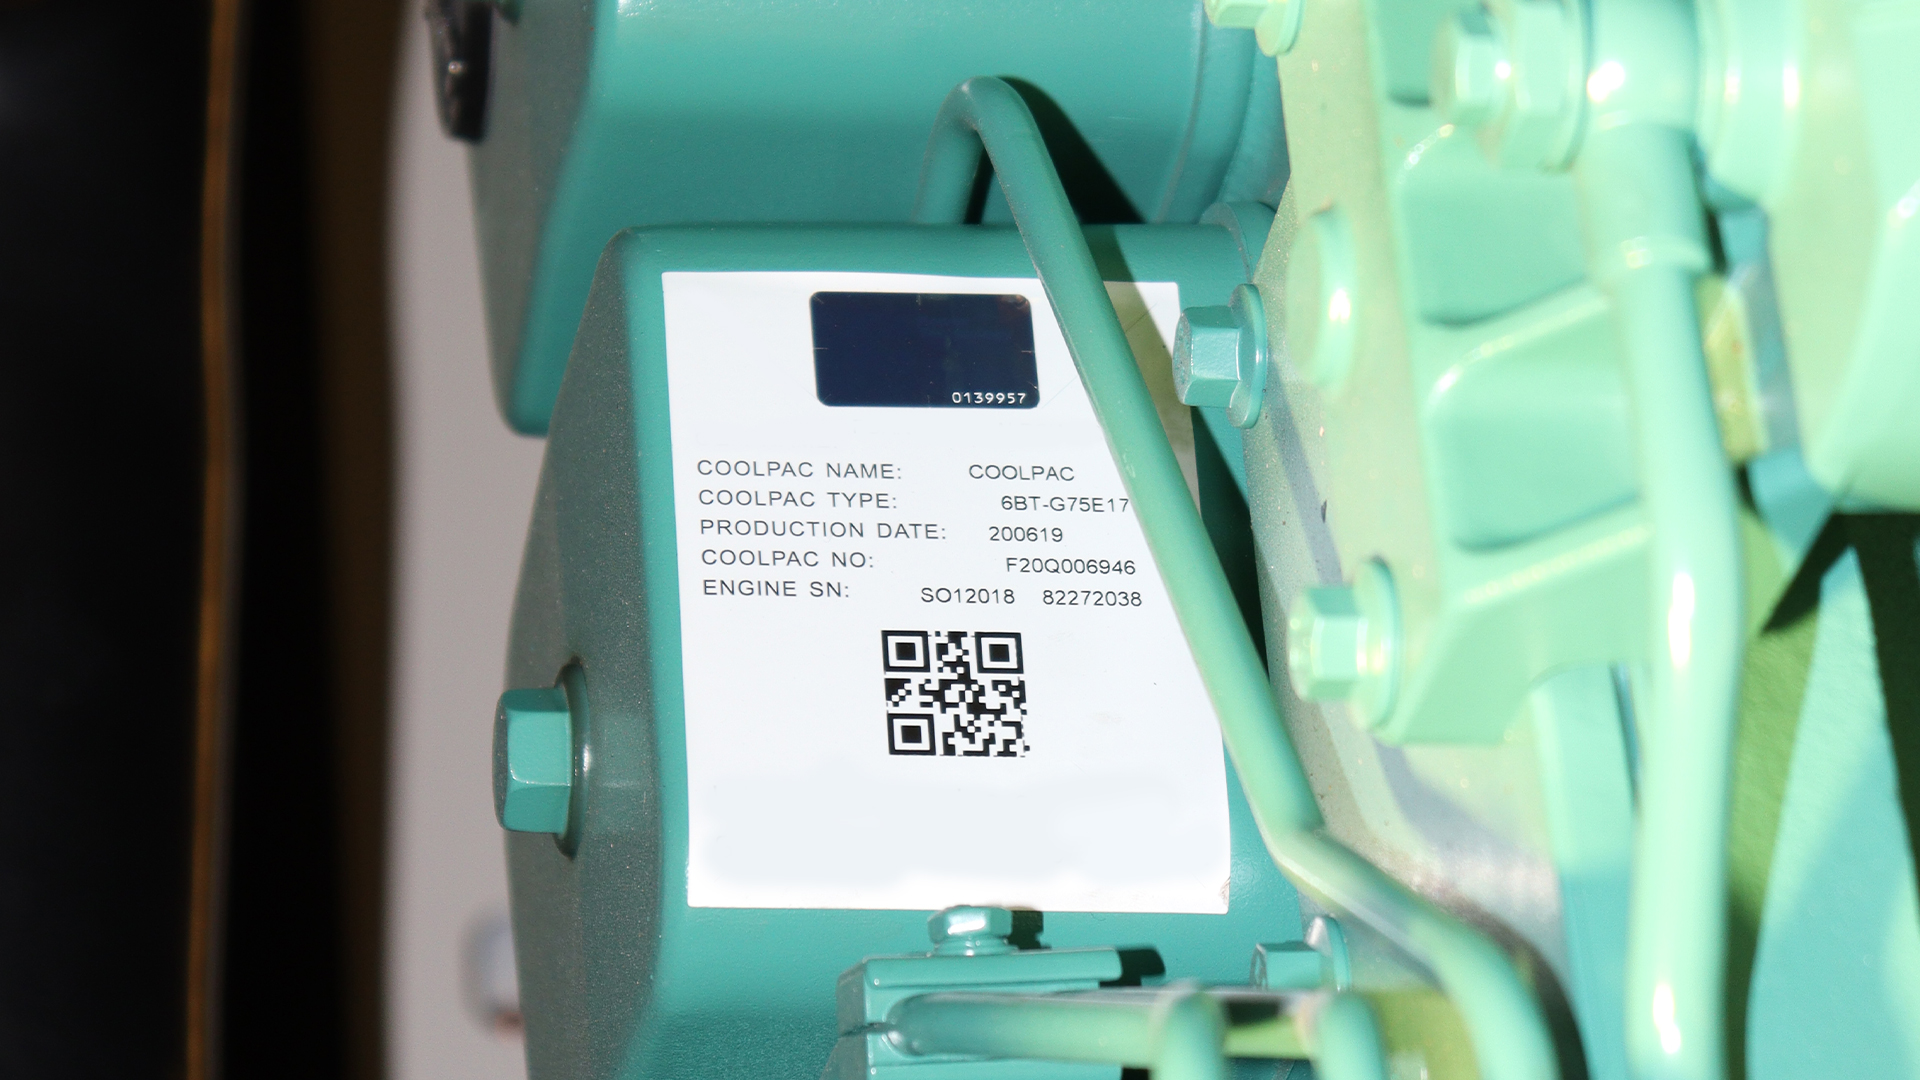 Label for the 6BT-G75E17 Coolpac